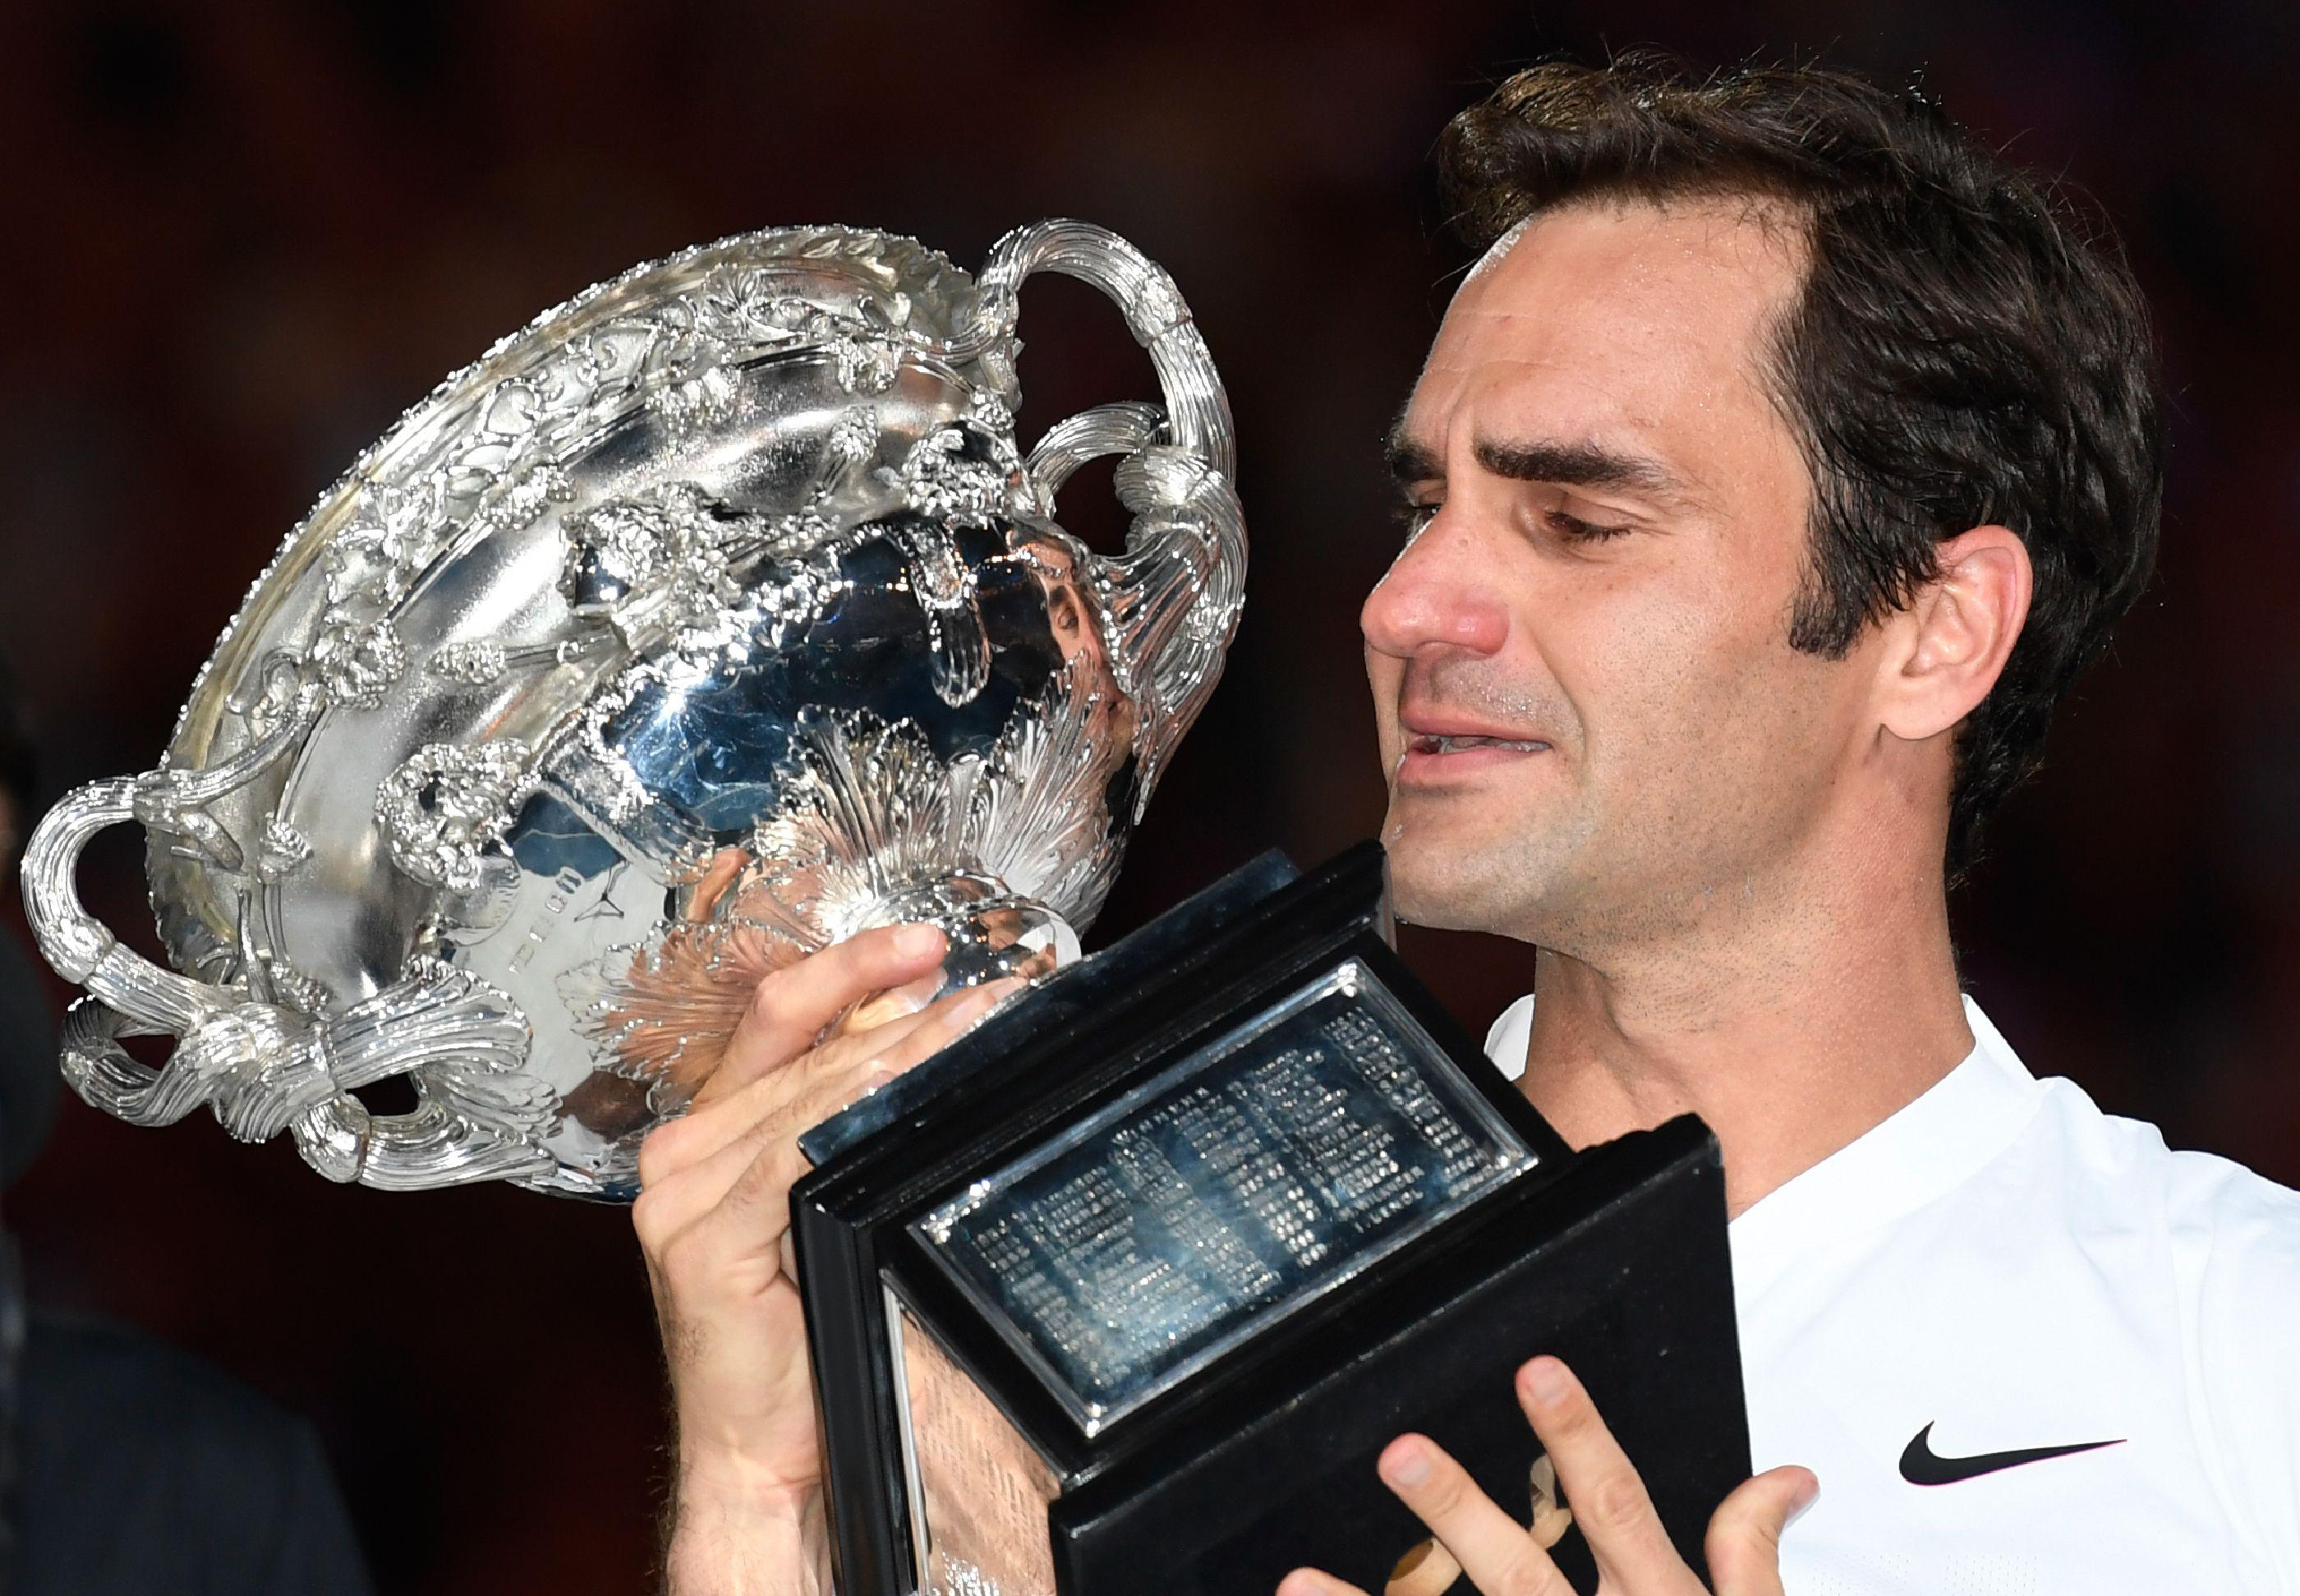 Roger Federer claimed his 20th Grand Slam title after defeating Marin Cilic in Melbourne